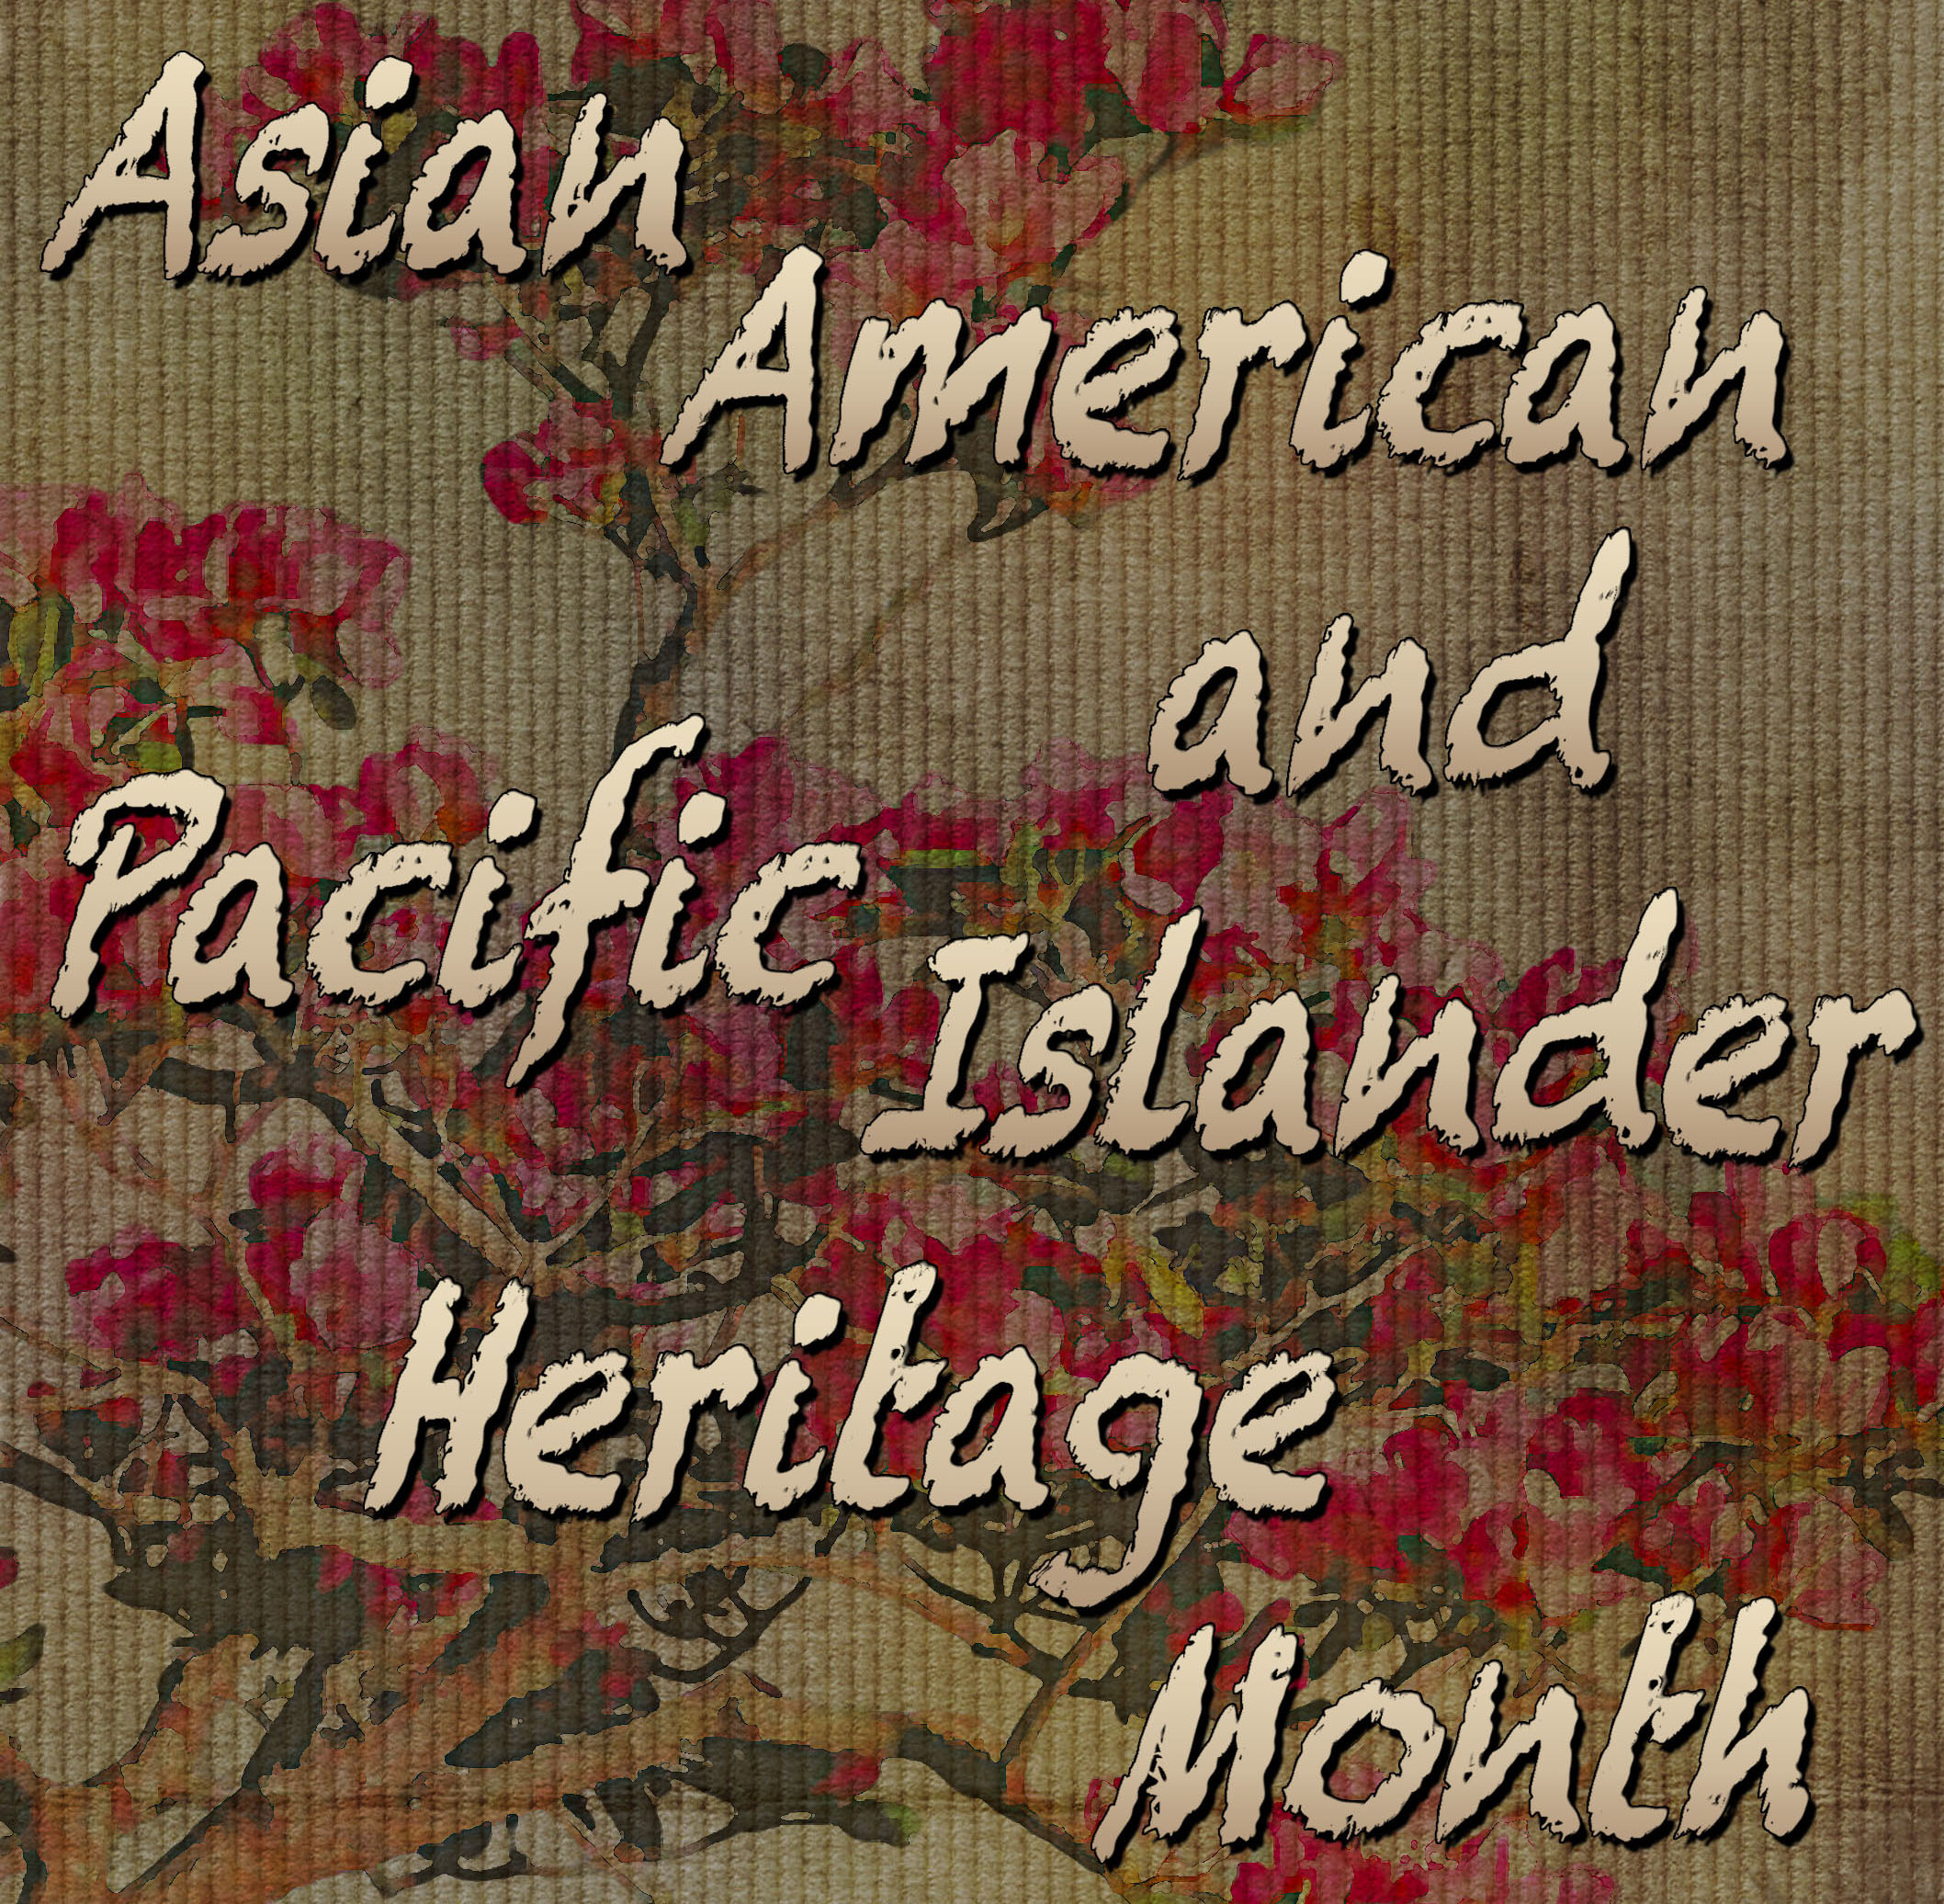 Image result for Asian Pacific American Heritage Month